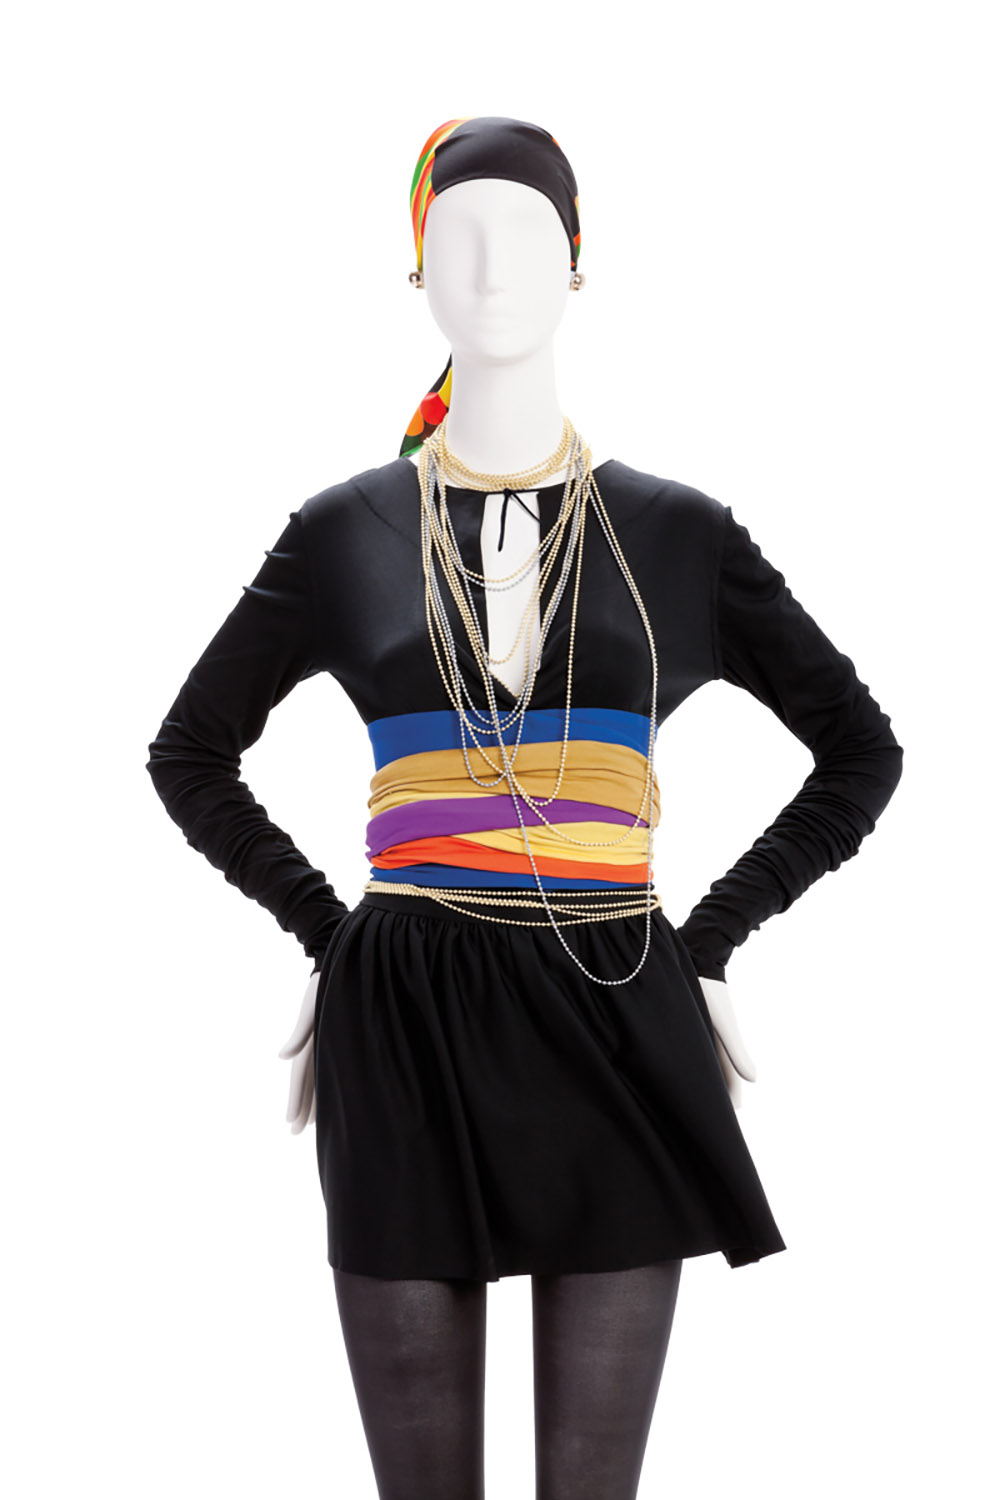 Black dress with long sleeves and multi-color ties at waist.